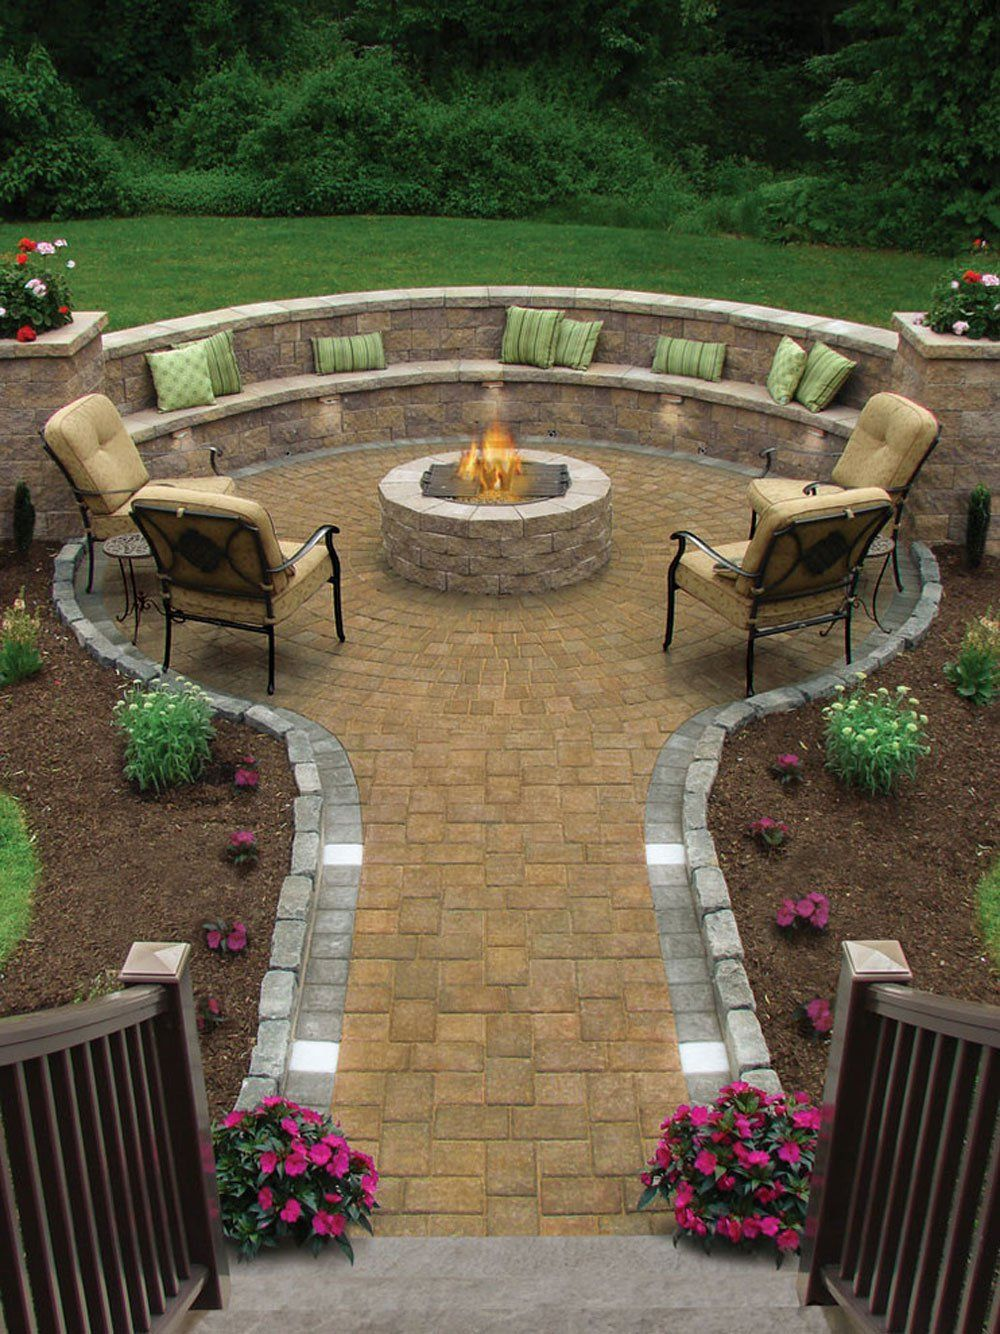 17 Of The Most Amazing Seating Area Around The Fire Pit EVER